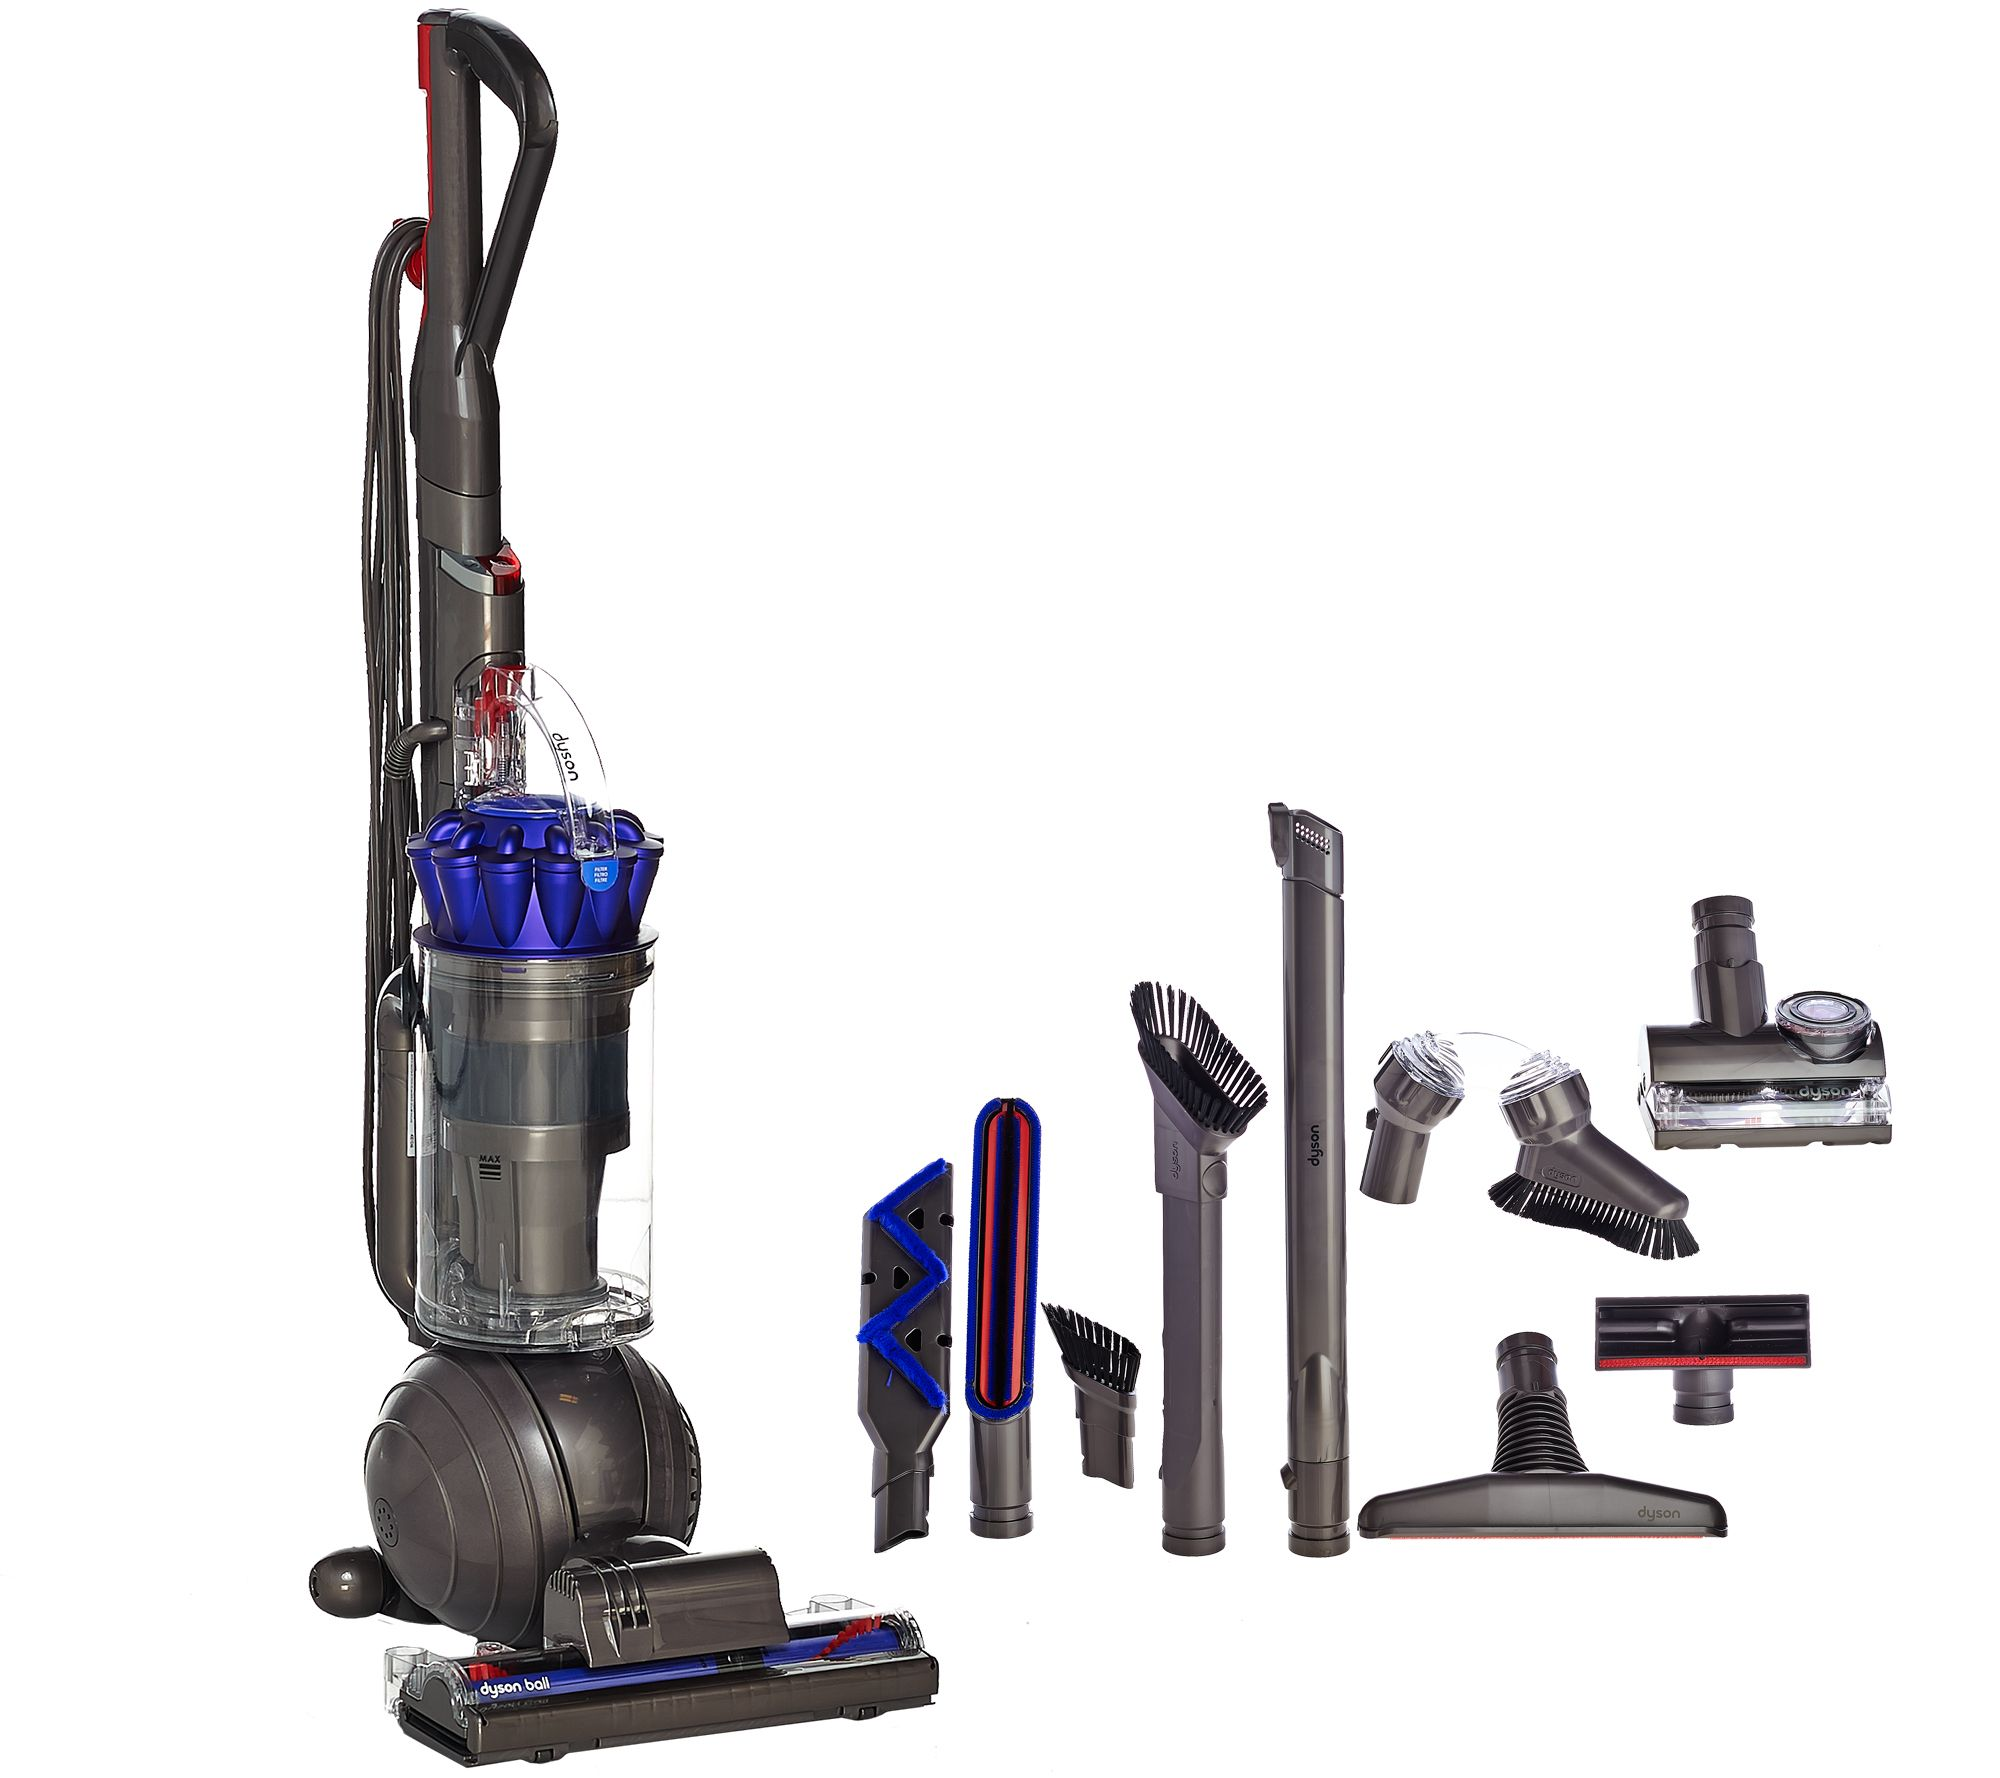 Image of: Carpet Dyson Ball Animal Upright Vacuum W Assorted Attachments Page Qvccom Qvccom Dyson Ball Animal Upright Vacuum W Assorted Attachments Page